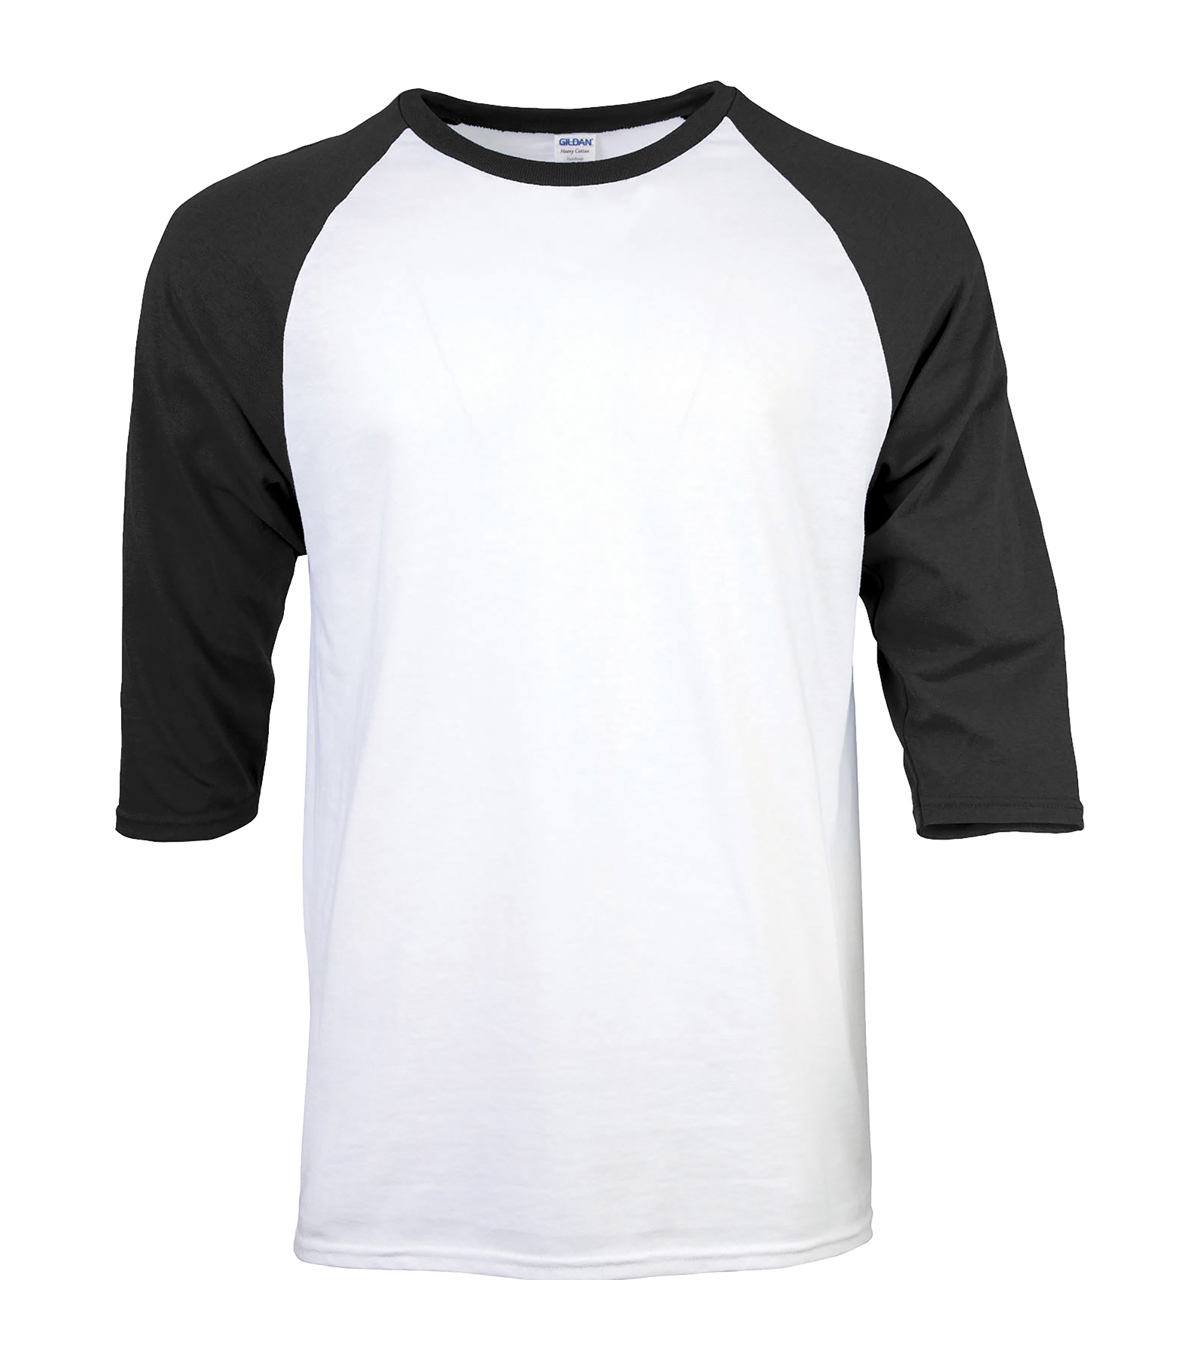 Gildan Large Adult Raglan Crew Sport T-Shirt, White-black